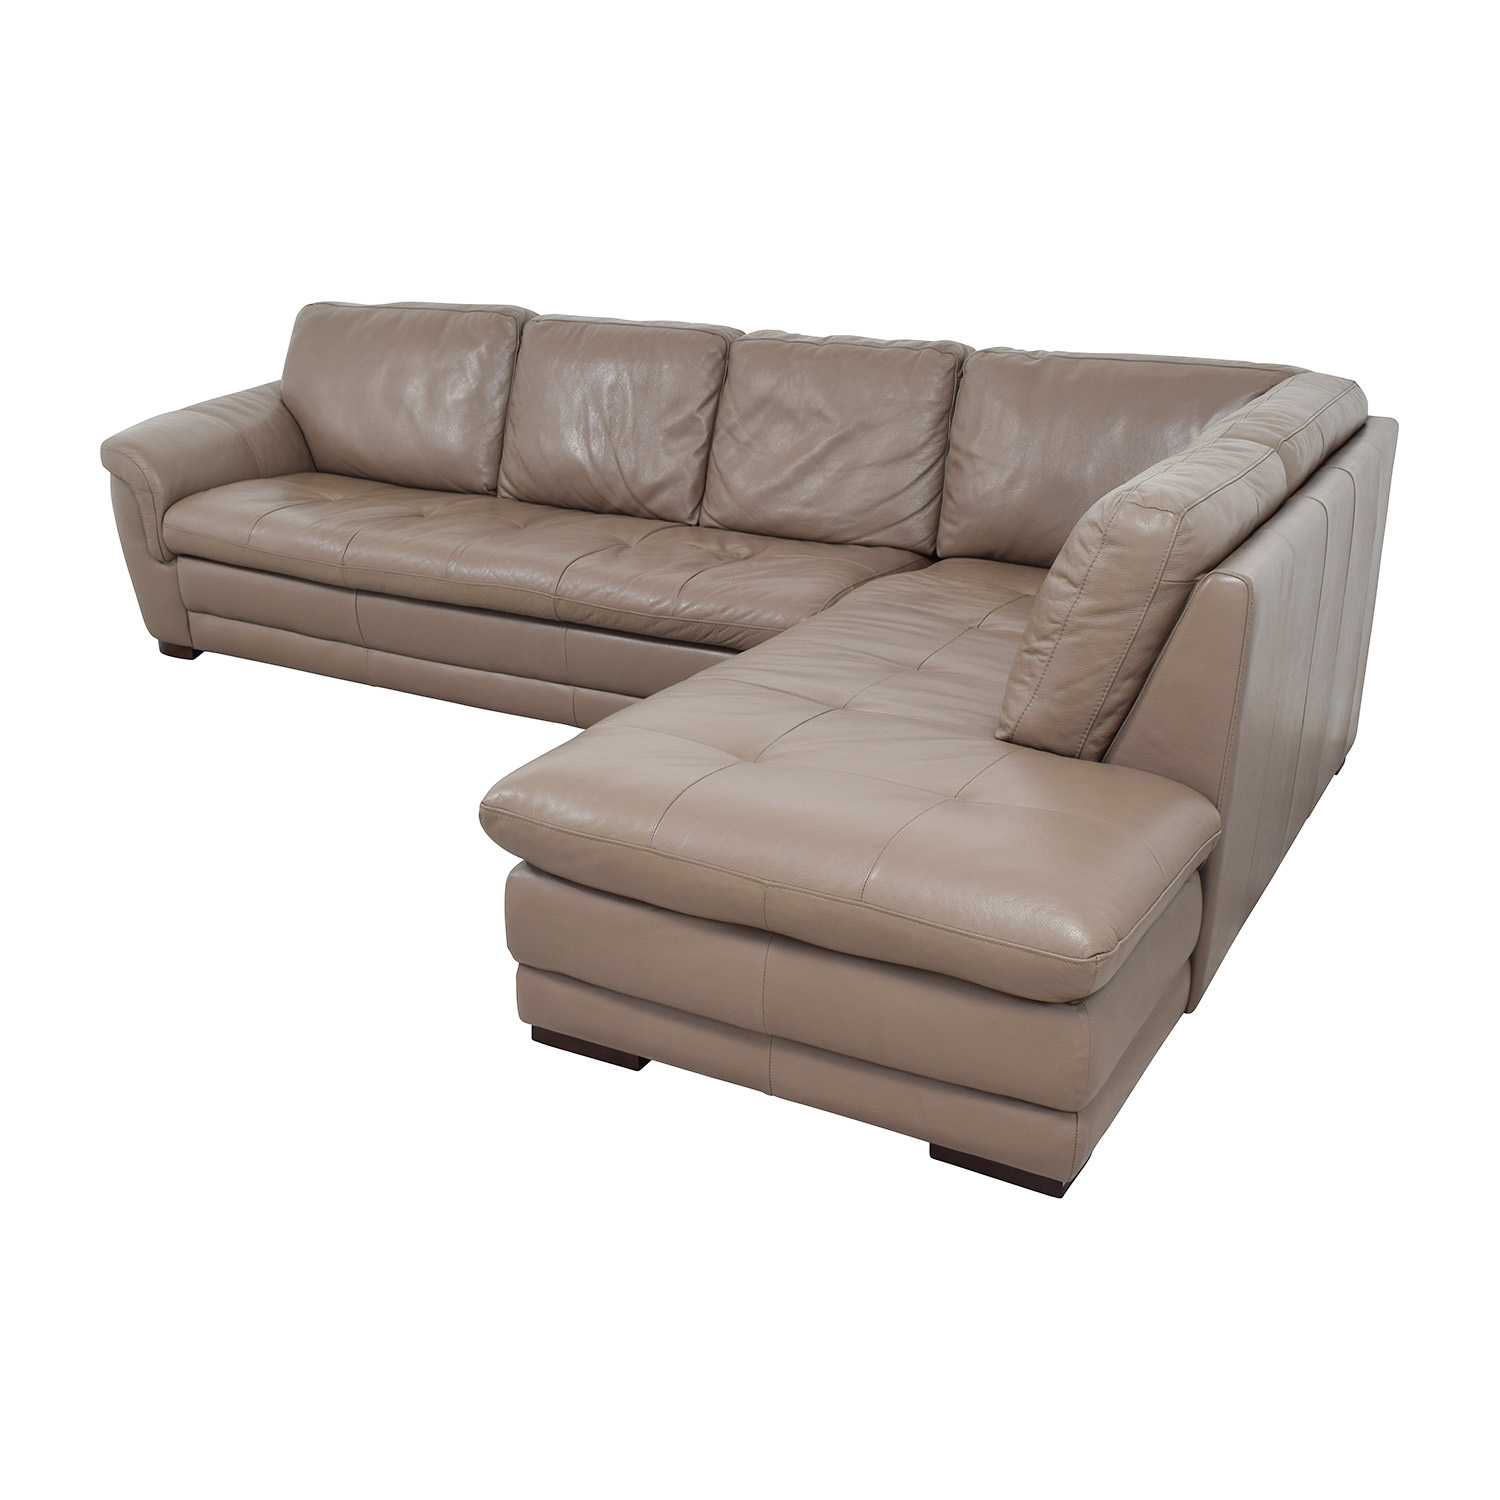 Raymour and Flanigan Raymour & Flanigan Tan Tufted Leather Sectional for sale